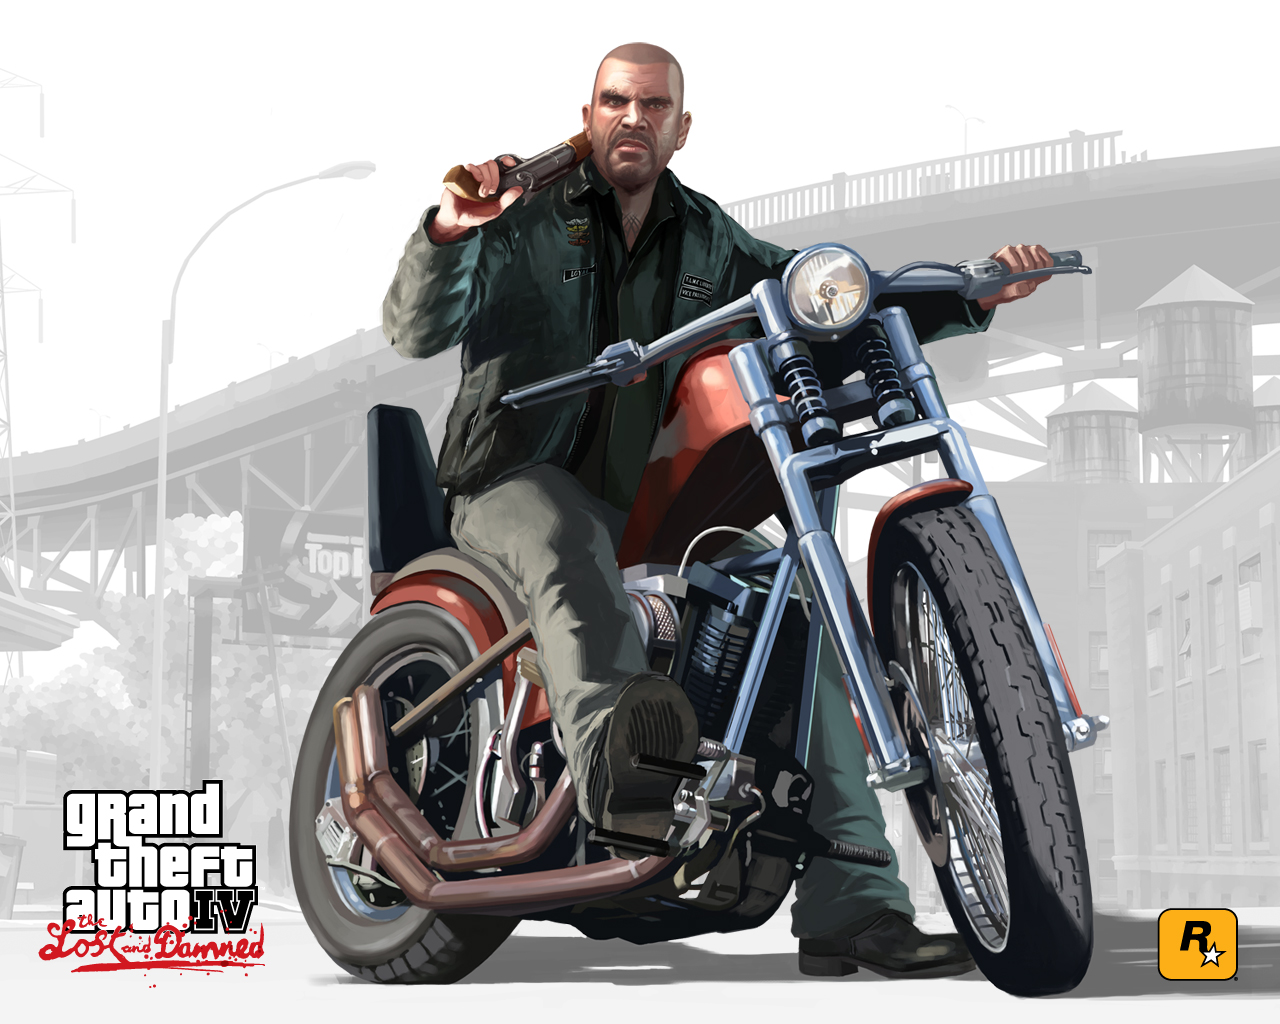 http://1.bp.blogspot.com/-z1q_xTmXjq4/TjniT9ywGUI/AAAAAAAAASs/6CyPjWgCdp8/s1600/grand-theft-auto-episodes-from-liberty-city.jpg